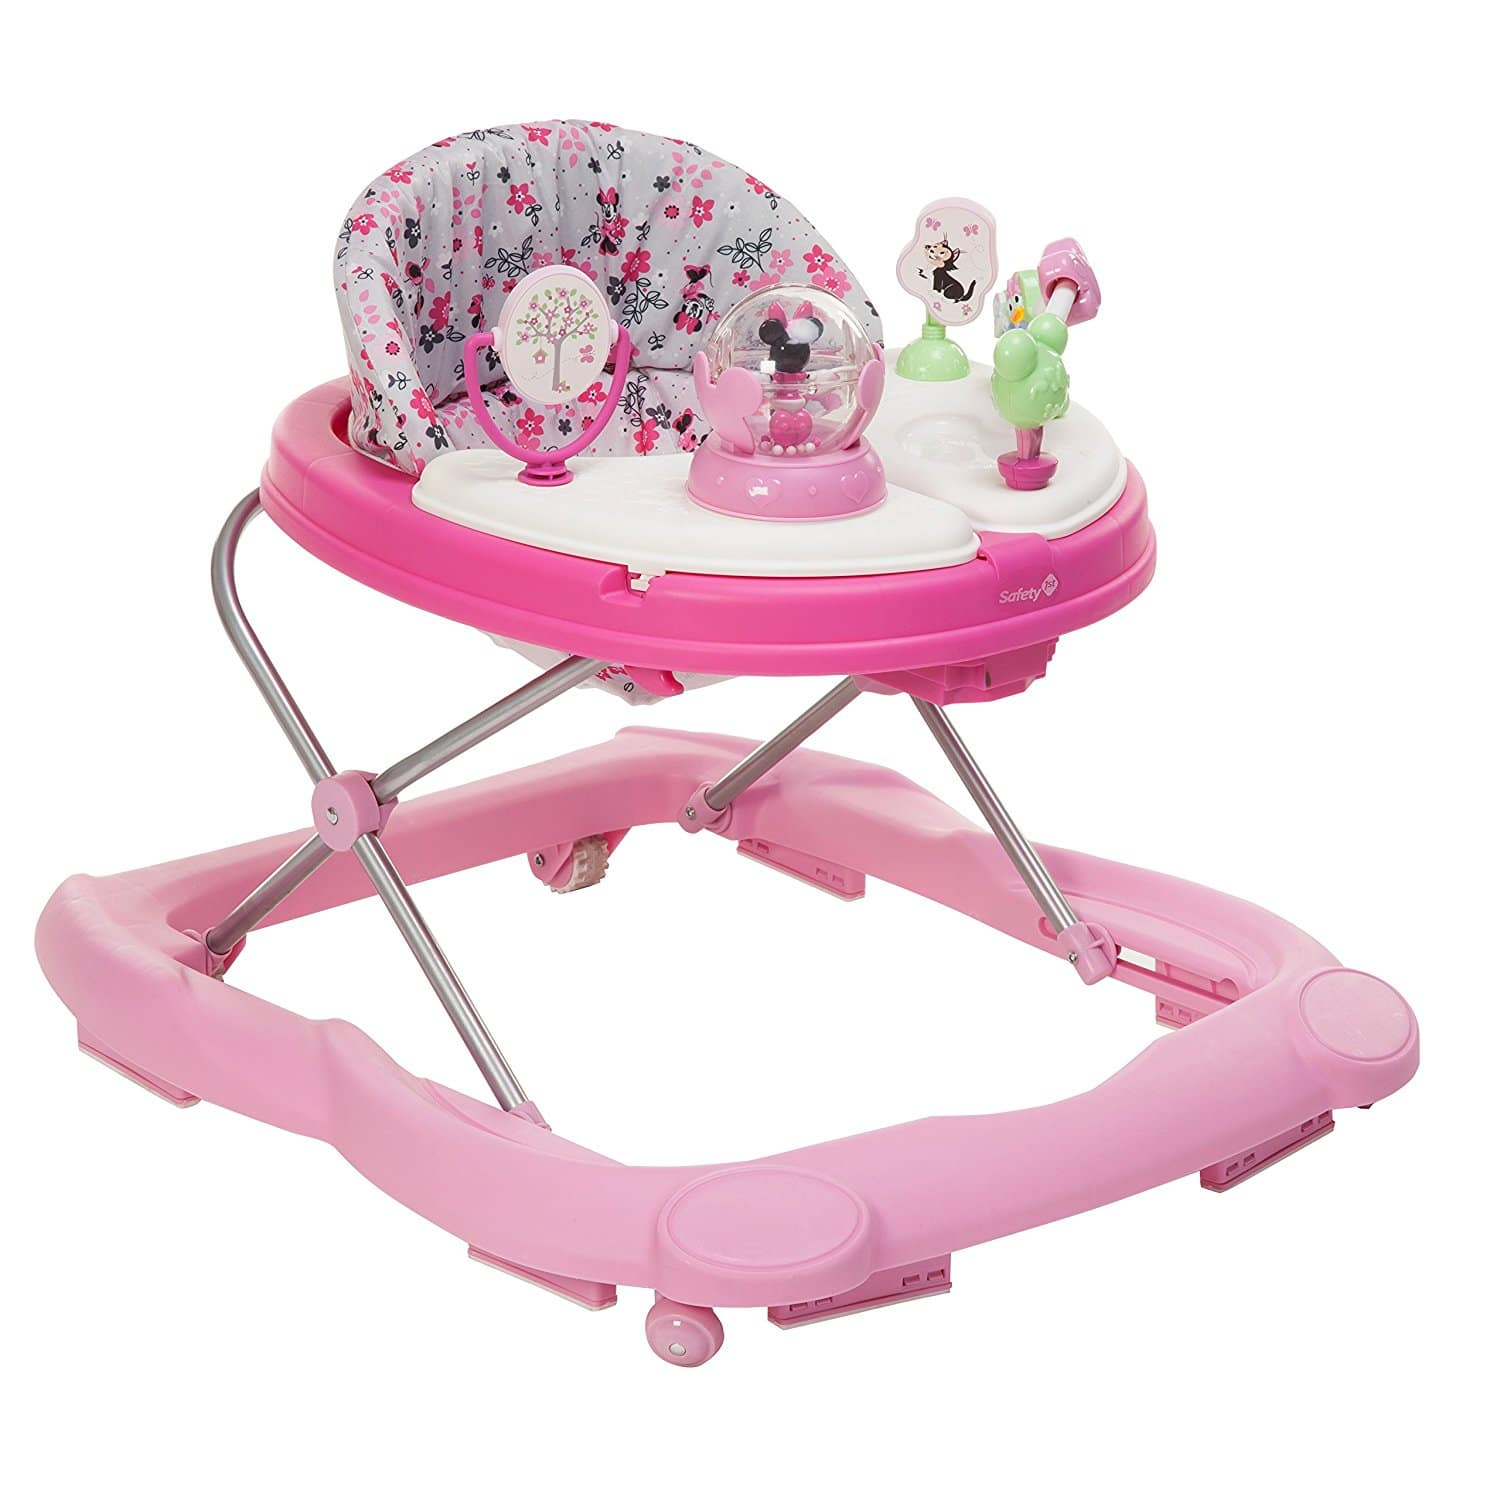 Disney Minnie Music and Lights Walker – Best Baby Walker Activity Center